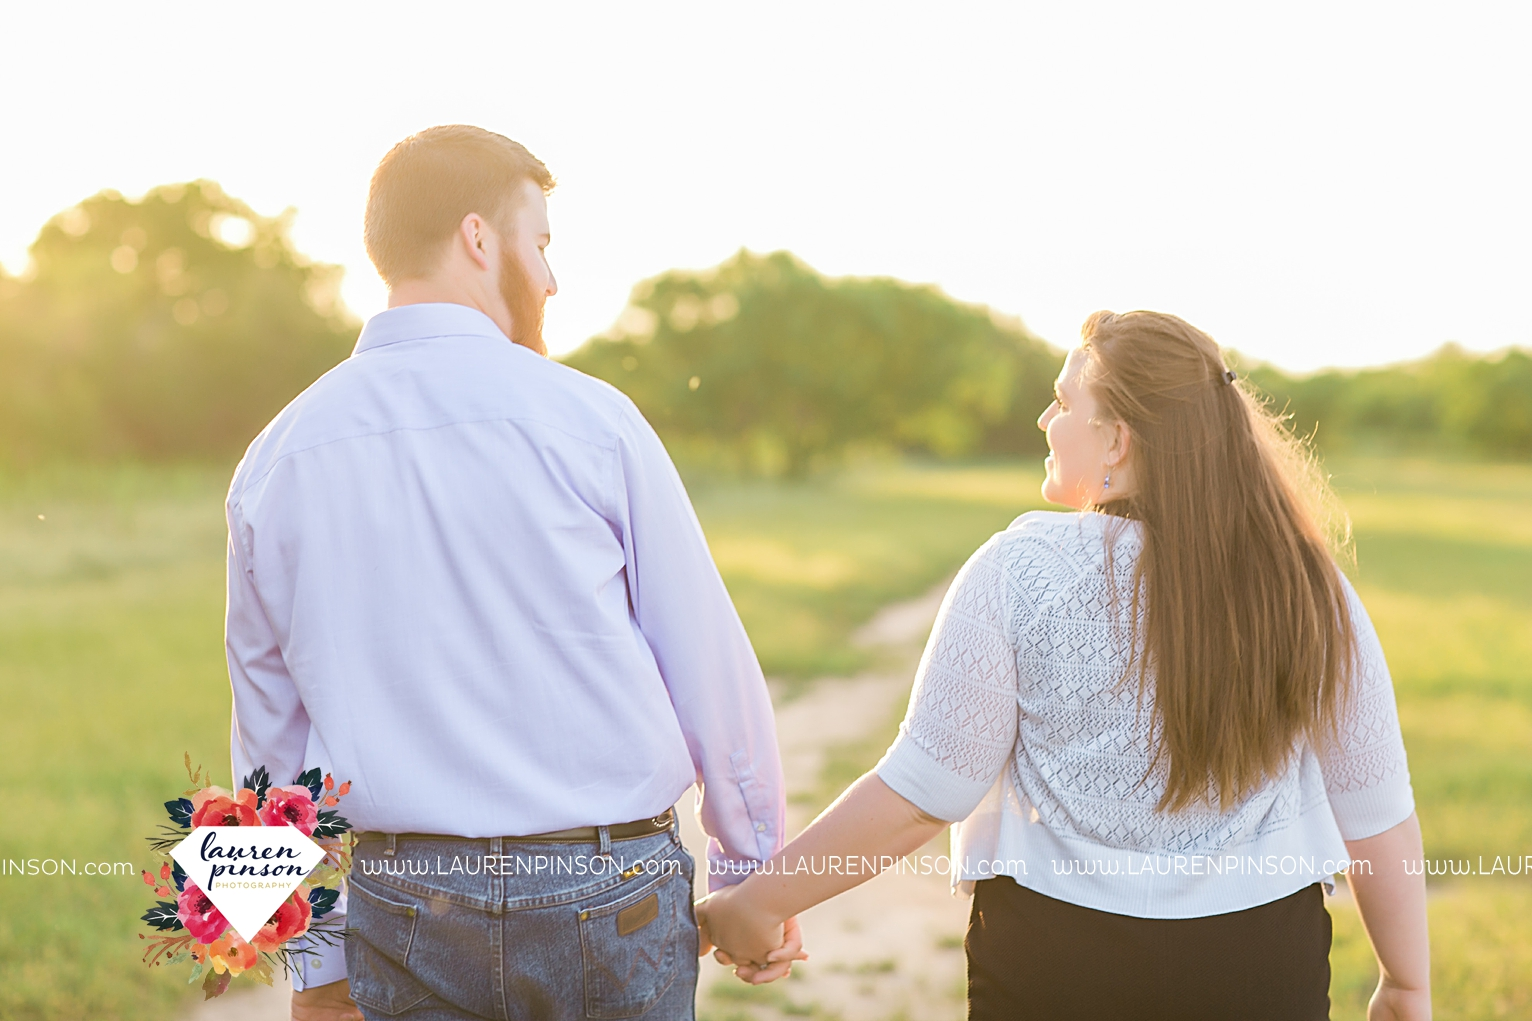 met-on-christian-mingle-texas-engagement-sesion-in-wichita-falls-00012.jpg